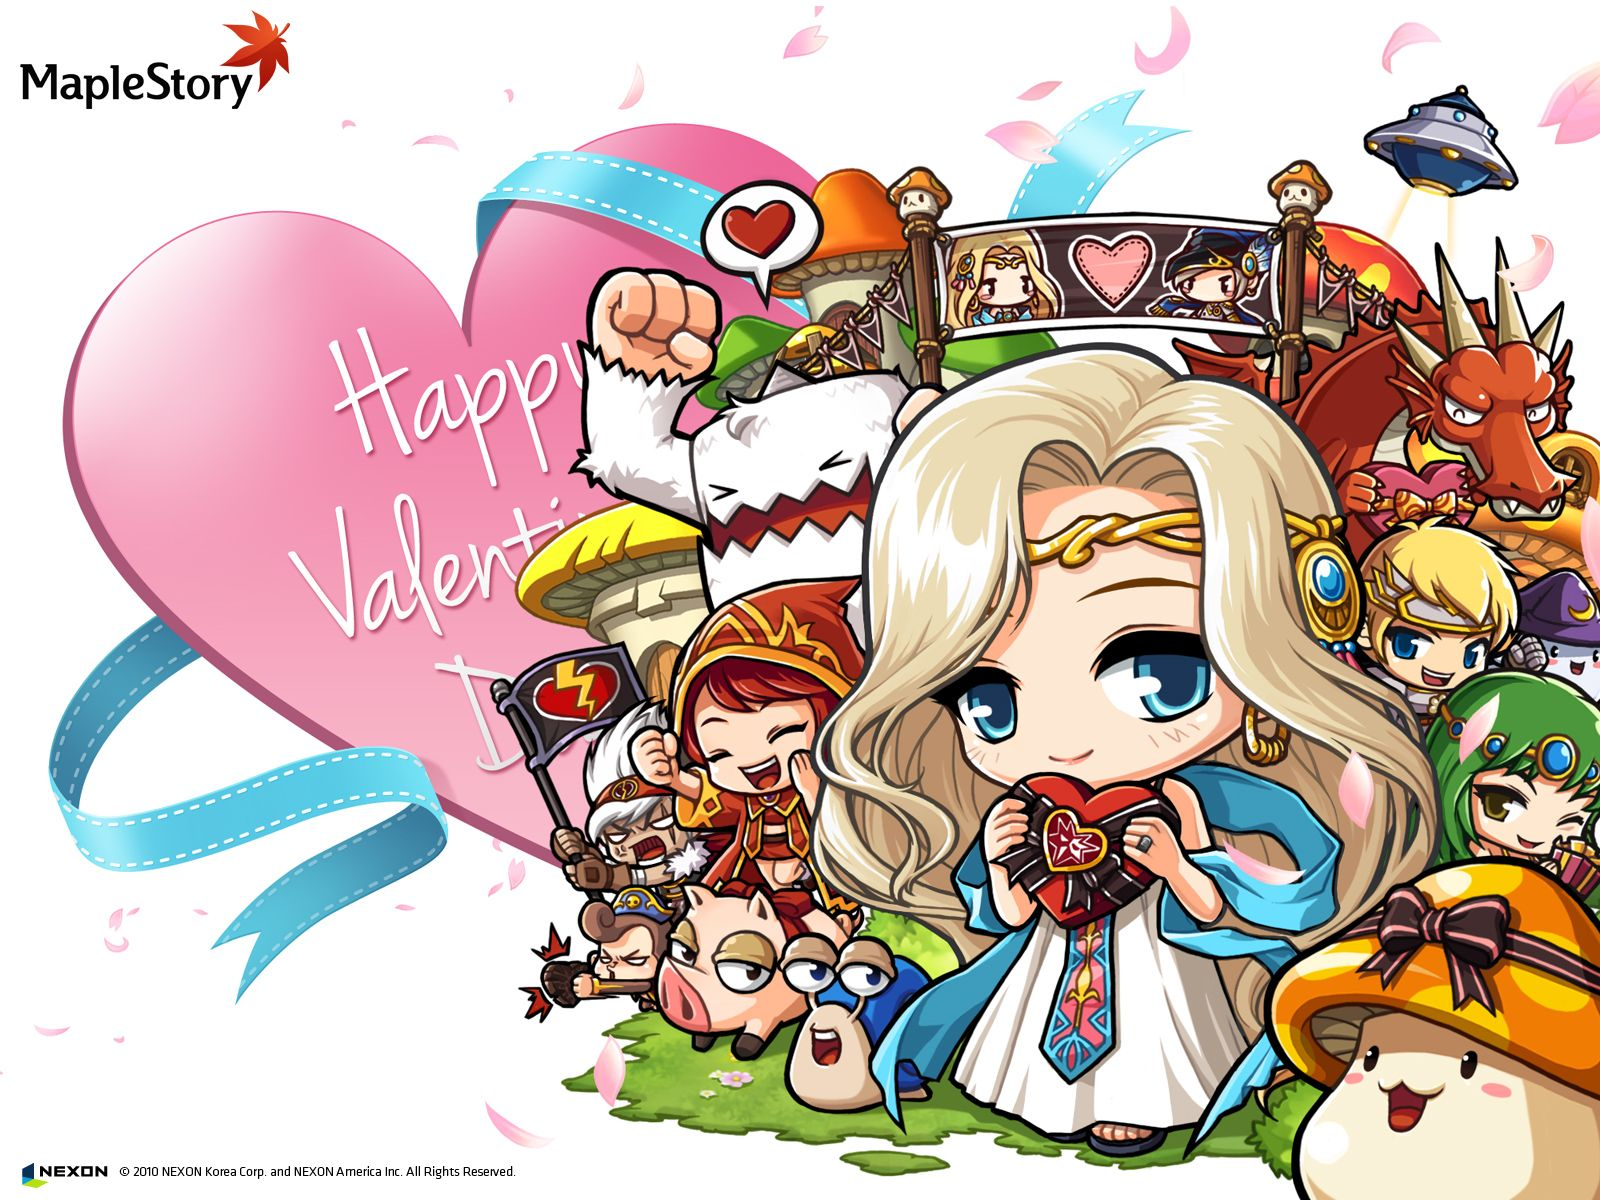 Maplestory Wallpapers Anime Chibi Kawaii Anime Artwork